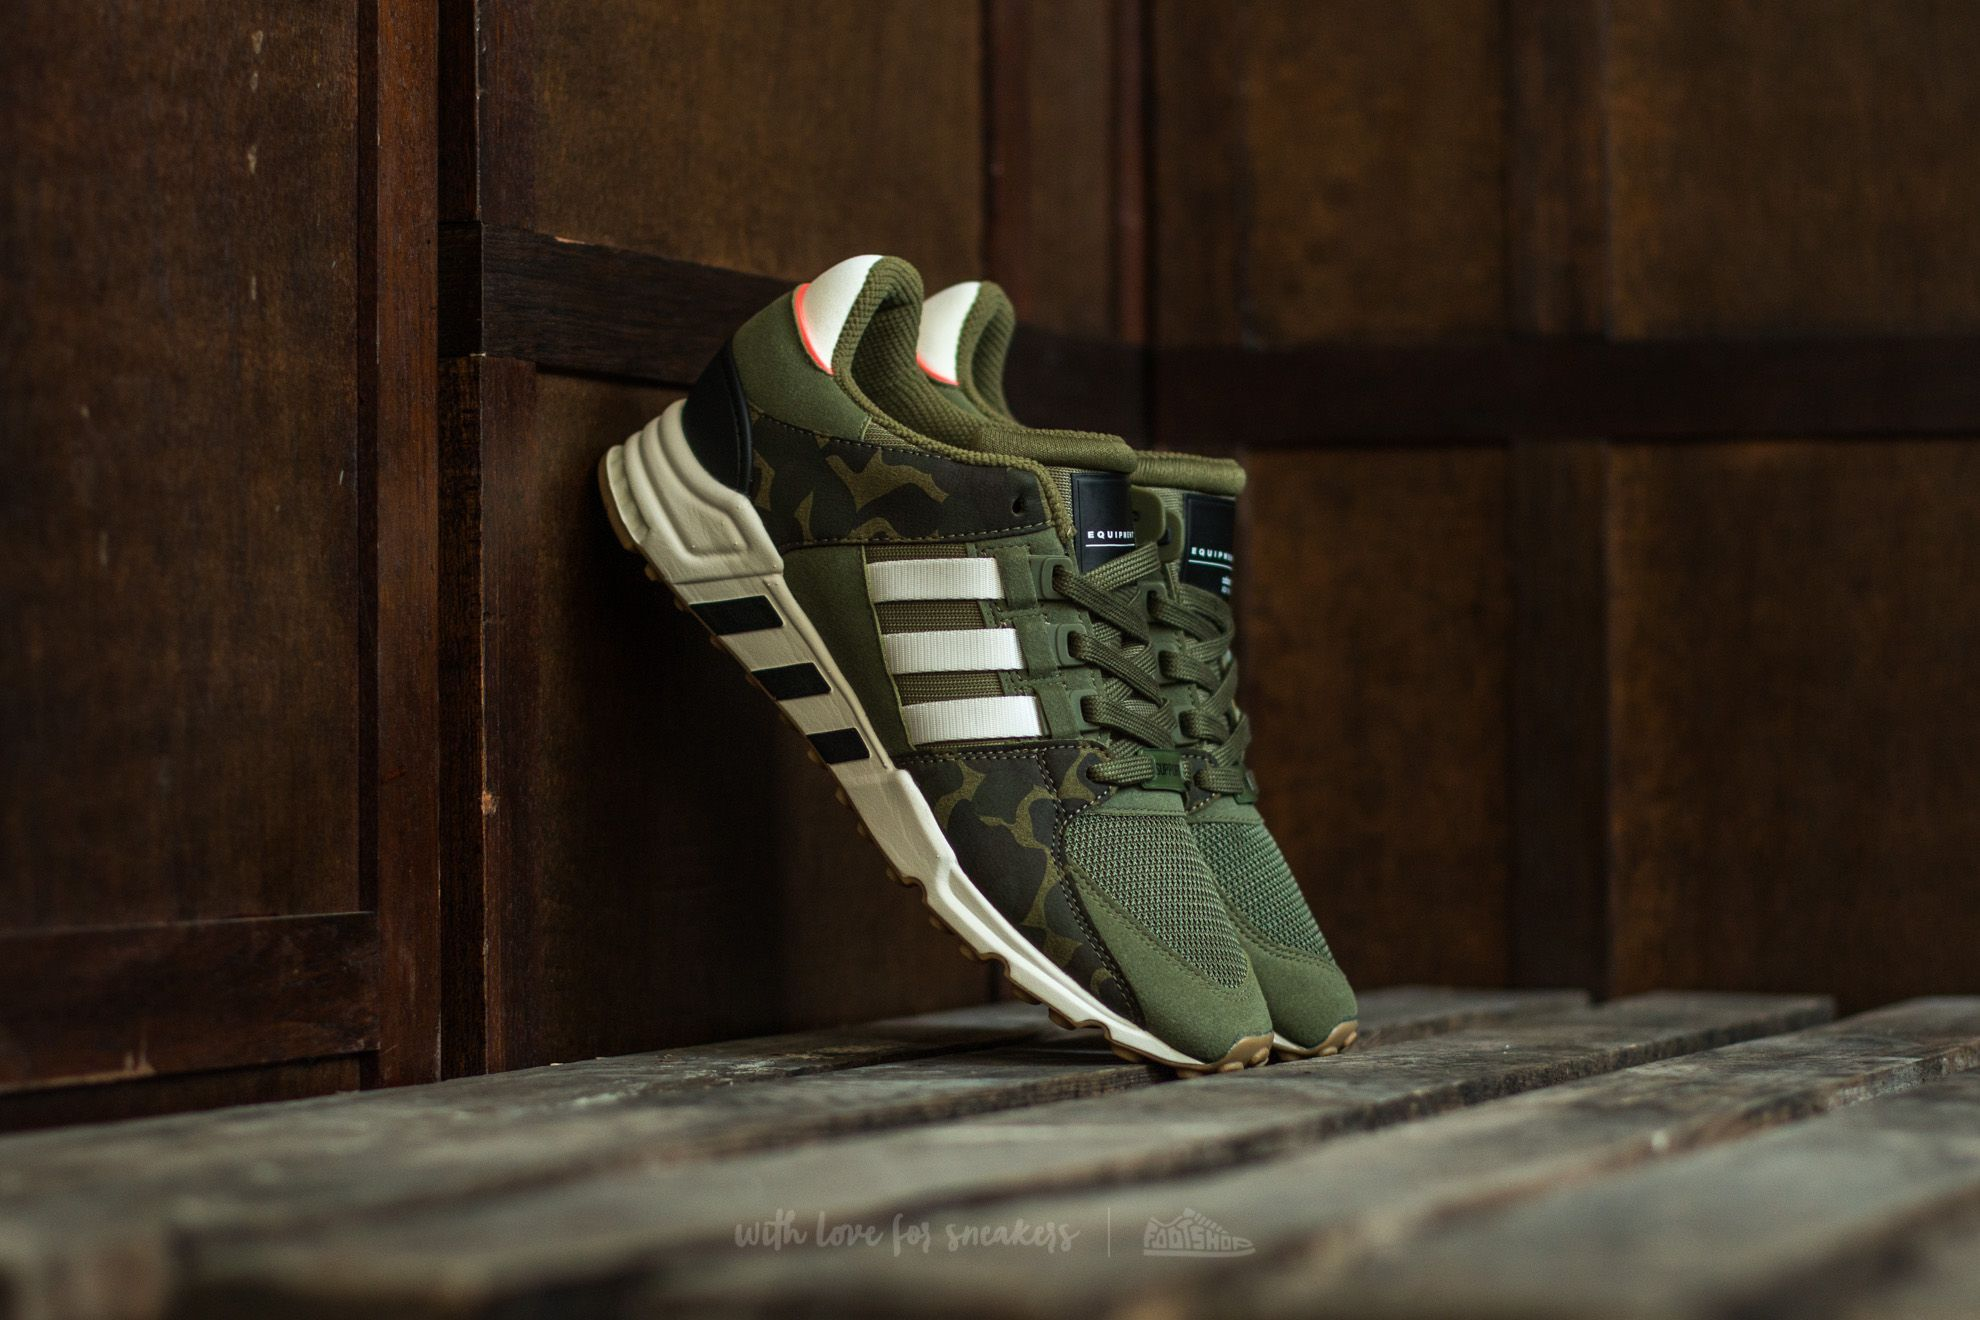 bc471eaf6 ADIDAS EQT SUPPORT RF  adidas  nmd  shoes  sneaker  sneakerhead  style   outfit  fashion  menstyle  trendway  trends  allstar  eqt